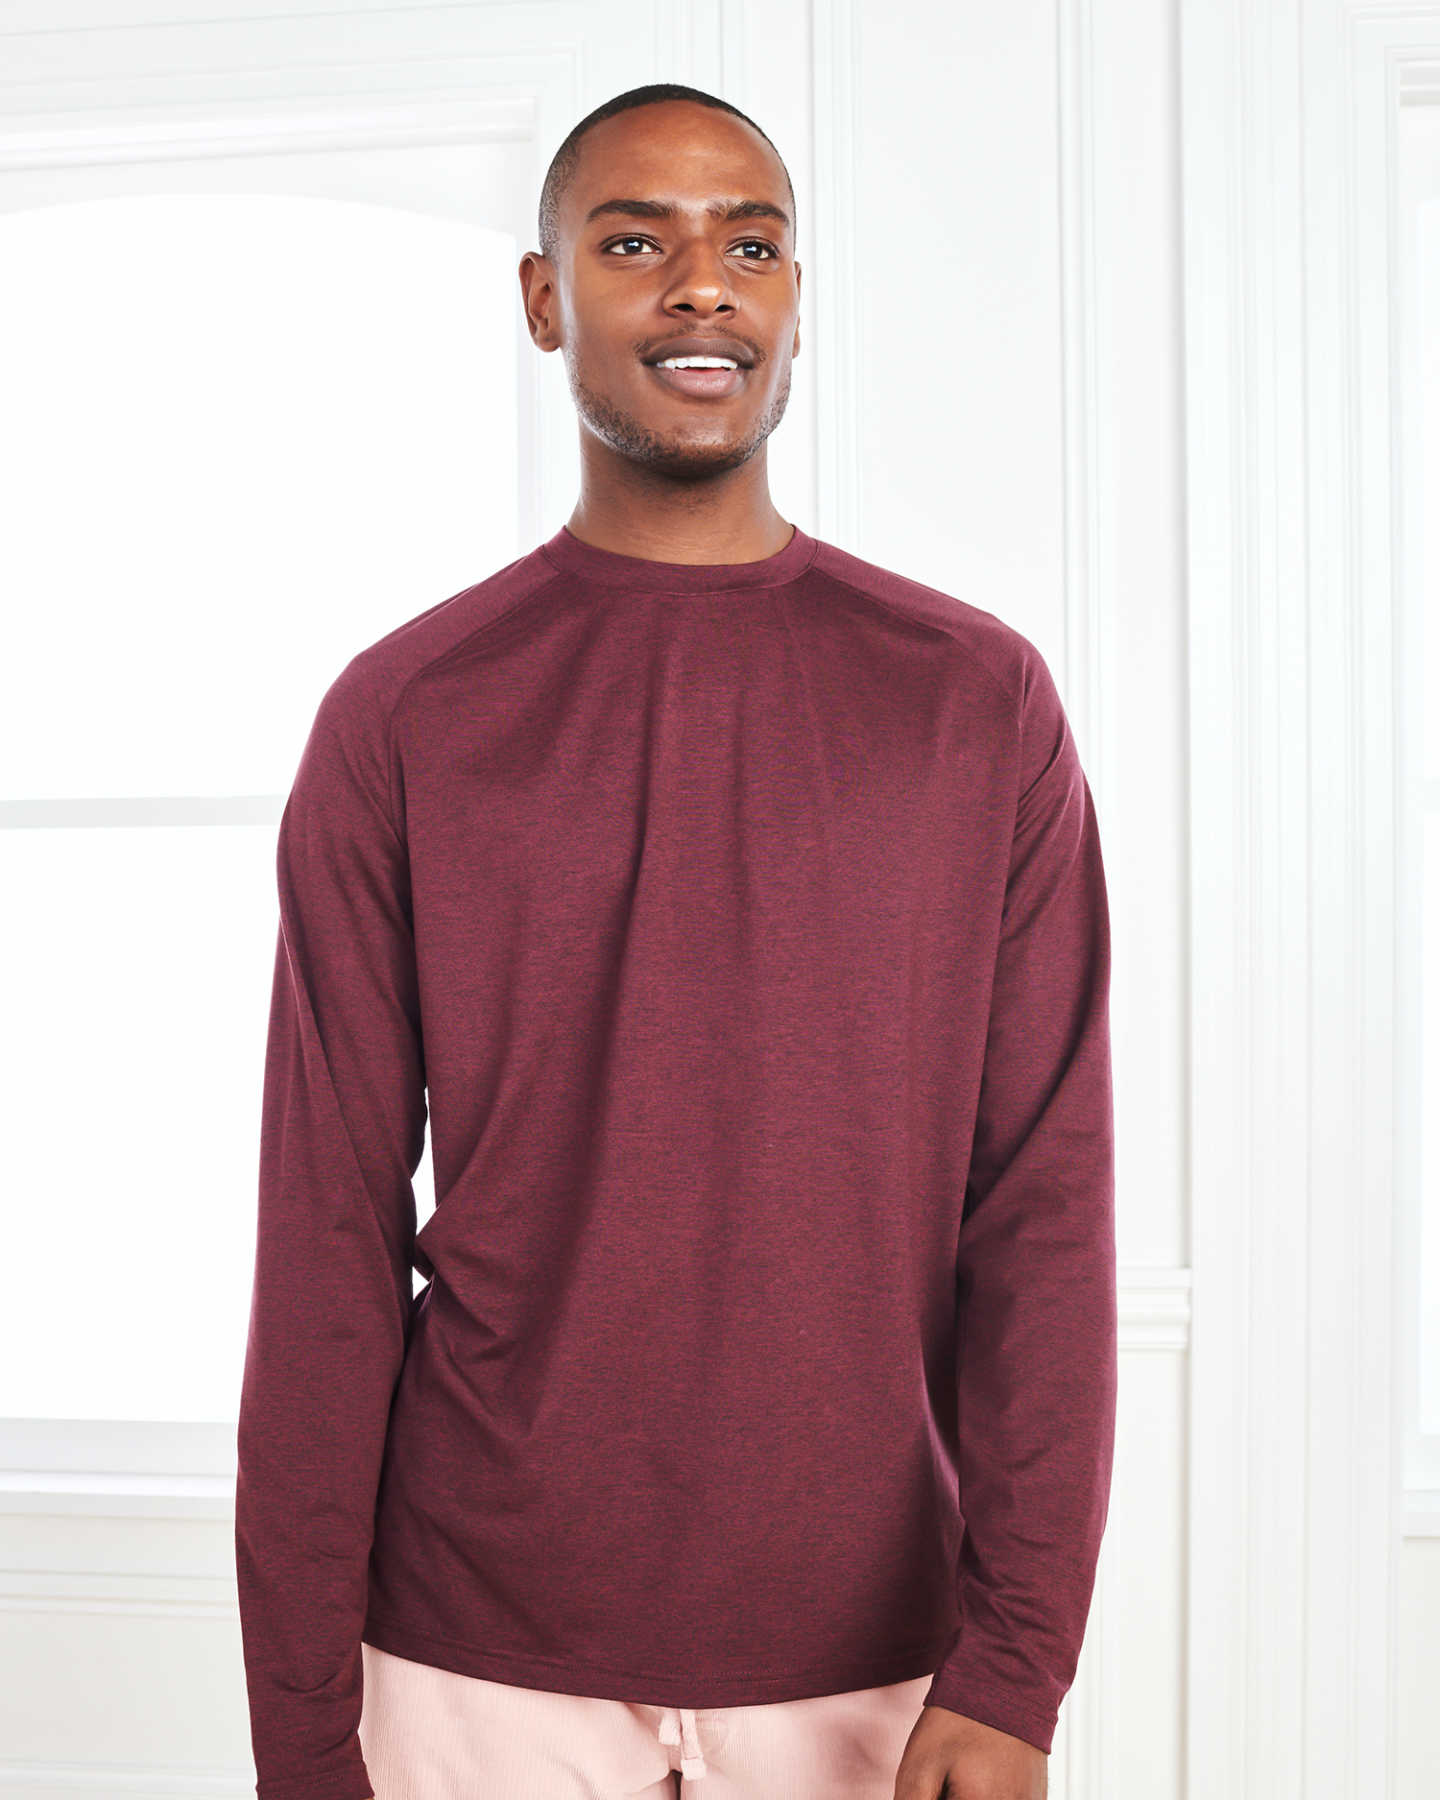 Flowknit Ultra-Soft Performance Long Sleeve Tee - Burgundy